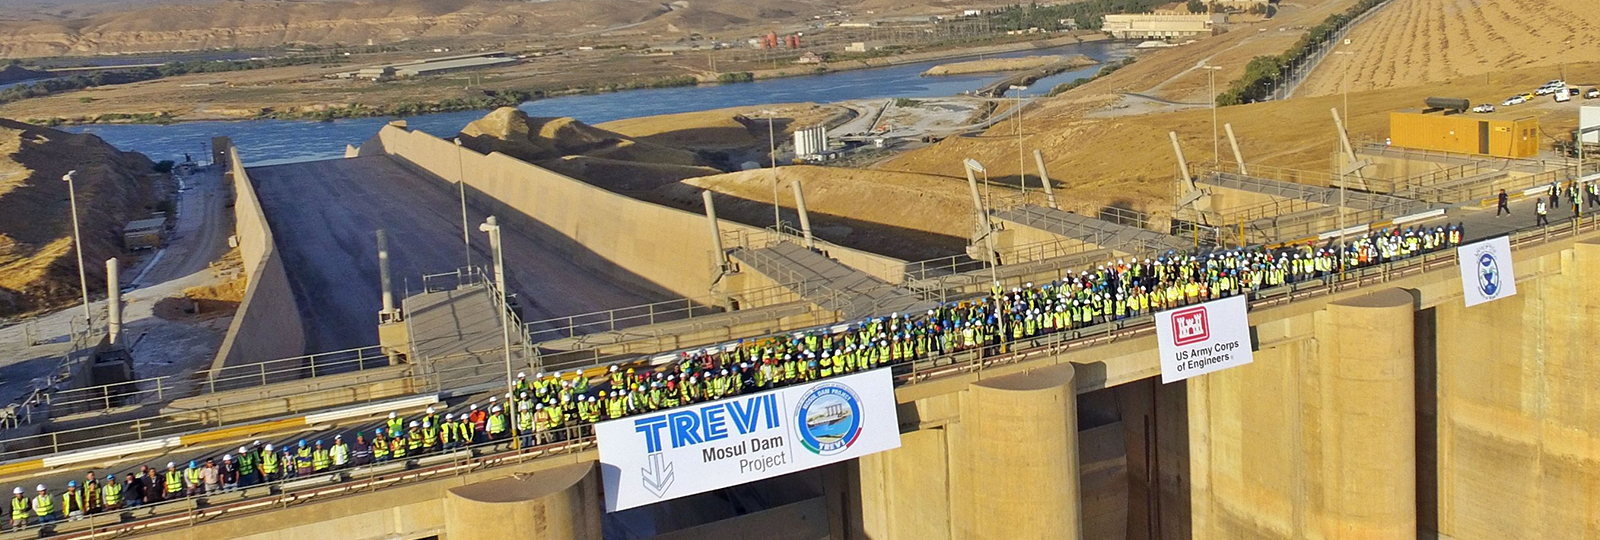 "Trevi, the ""Mission Impossible"" at the Mosul Dam is almost finished 